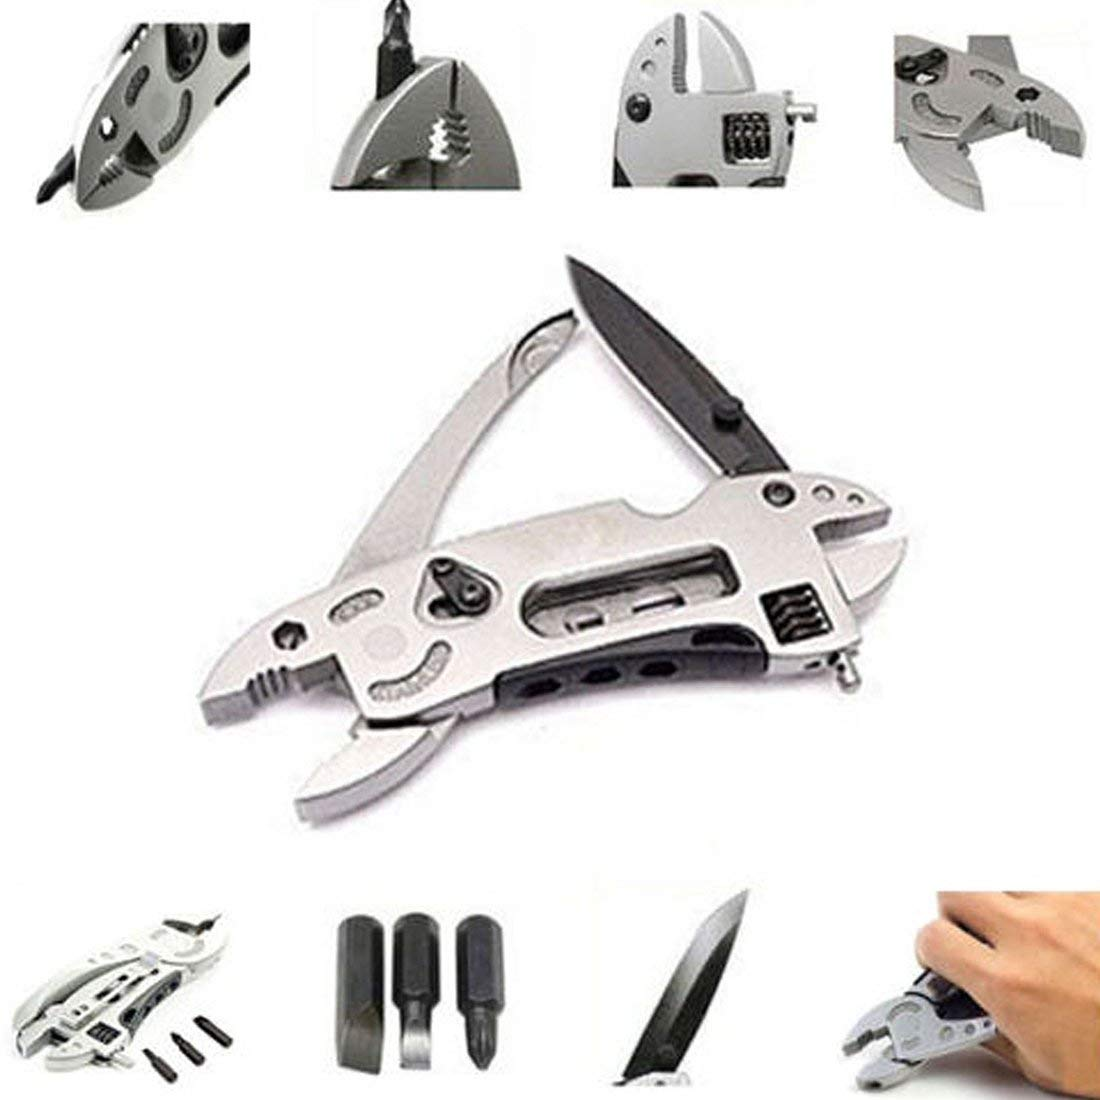 unbrand Pocket Wrench Multi-Function Outdoor Survival Knife with Multi-Tool Pliers & Spa